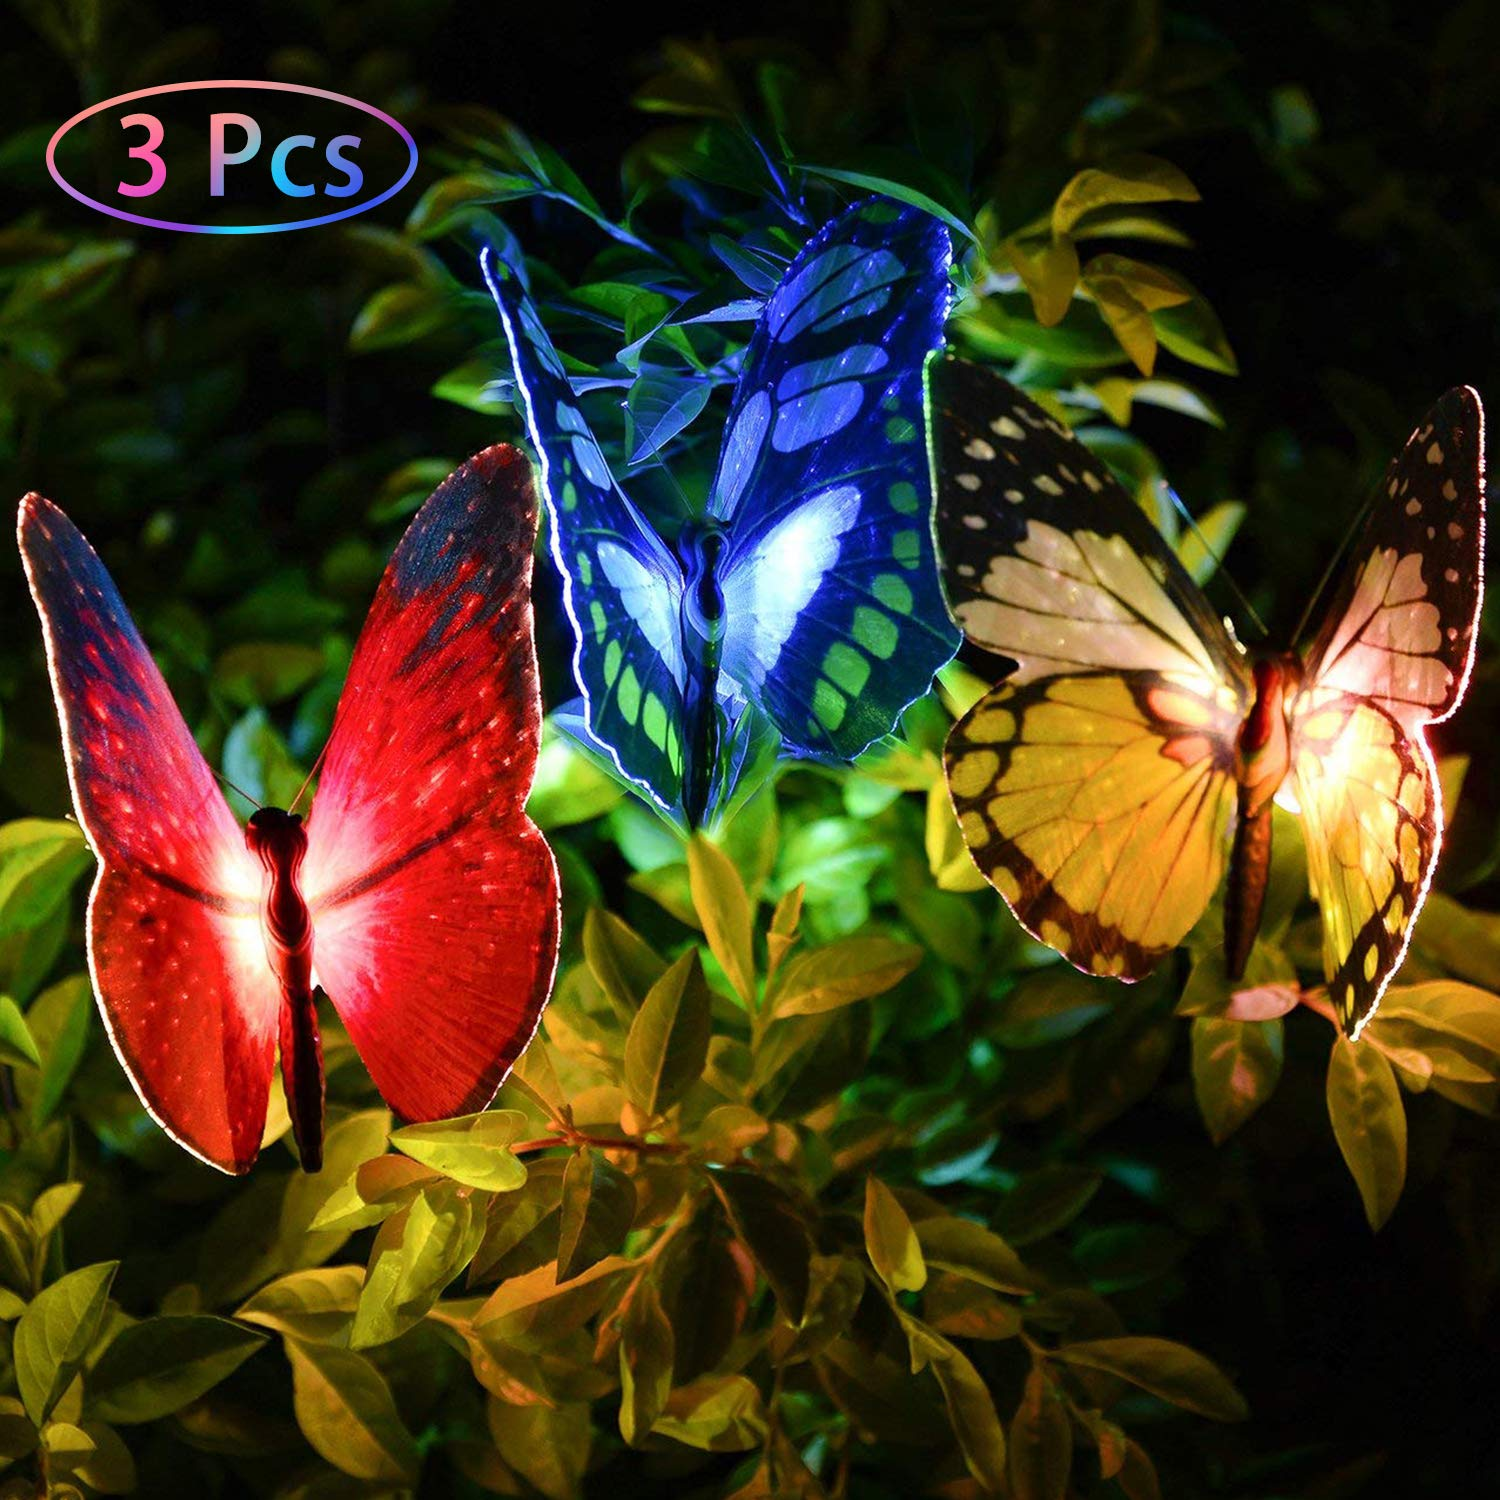 Outdoor Garden Solar Lights Flowers - 3 Pack Butterfly Flower Solar Powered Stake Light with Color Changing LED Garden Decorative Lights for Garden Patio Yard Housewarming Gifts (3 Pack Butterfly) by Jesam